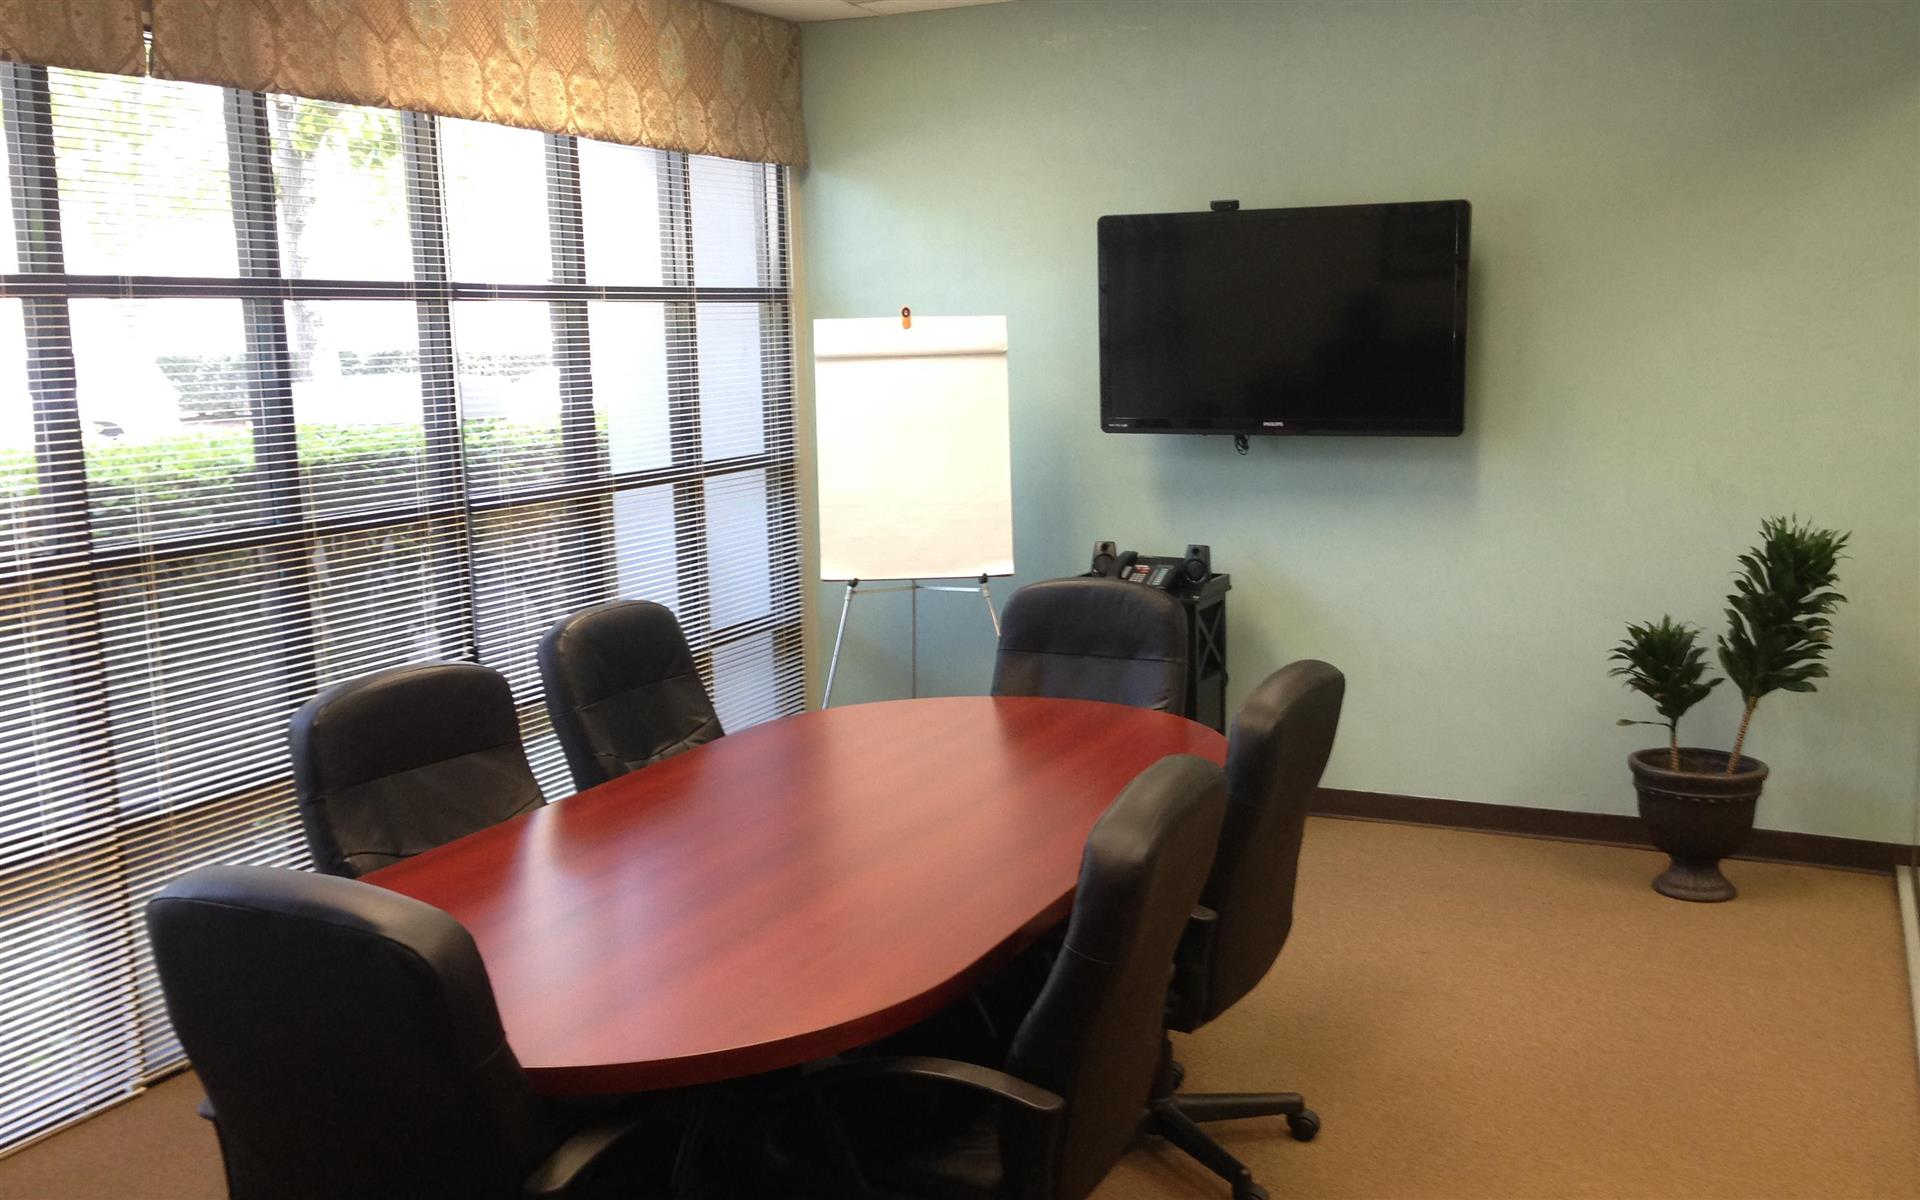 Marshall Life By Design - Professional Conference Room w/ Apple TV